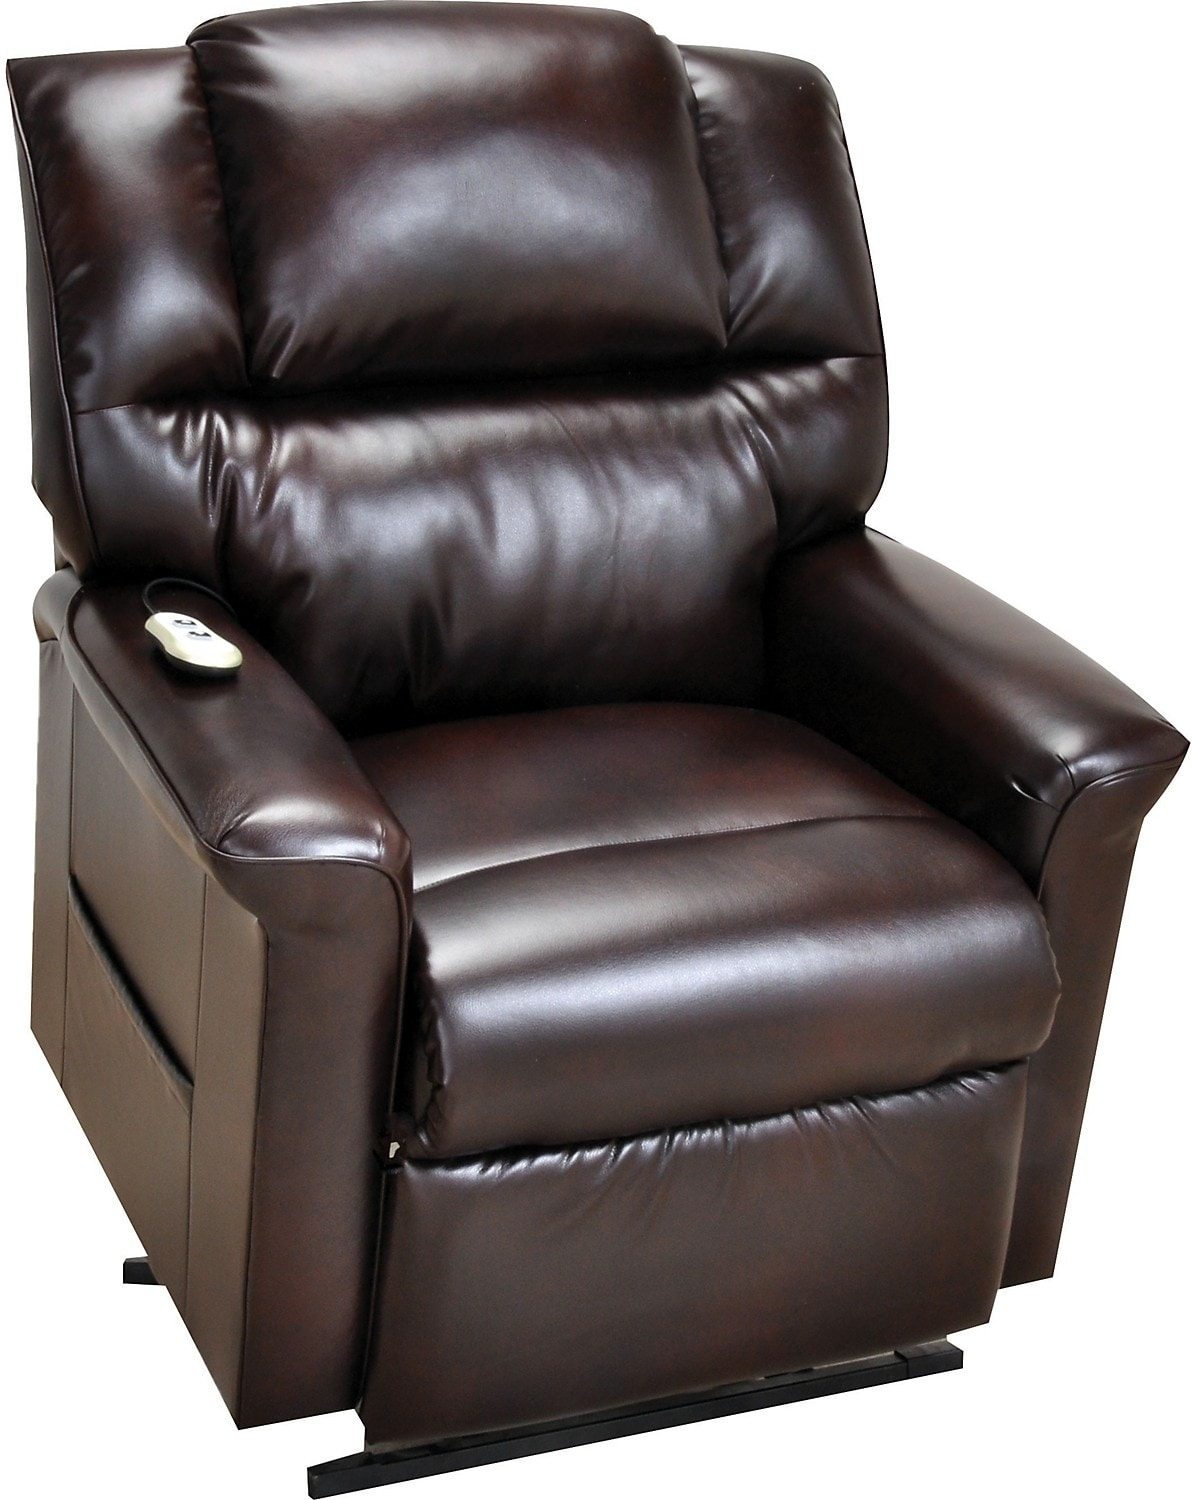 Living Room Furniture - Bonded Leather 3-Position Power Lift Recliner - Brown